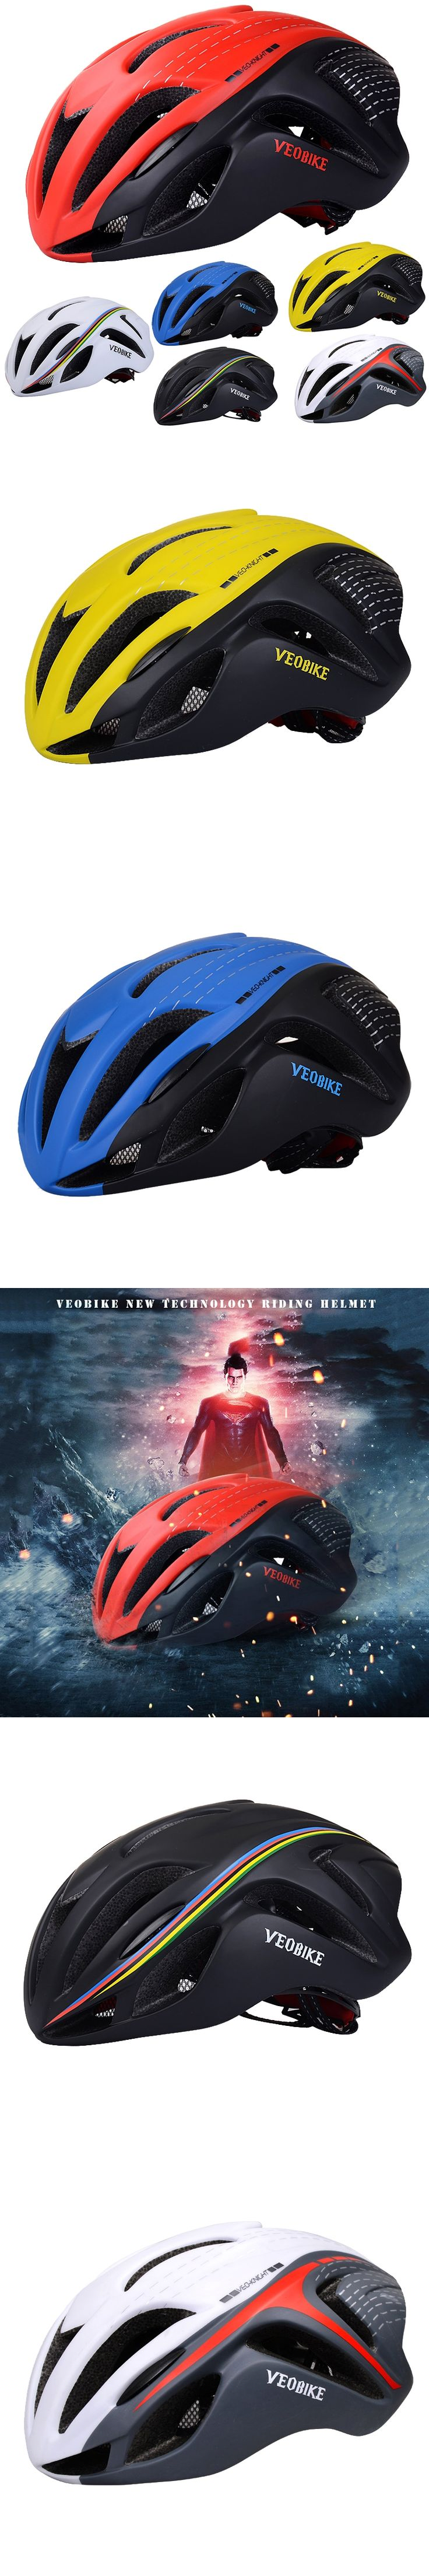 VEOBIKE Breathable Cycling Helmet Mountain Bike Bicycle Helmets Safety Equipment Design Ergonomic Oversized 15 Air Vents 250g